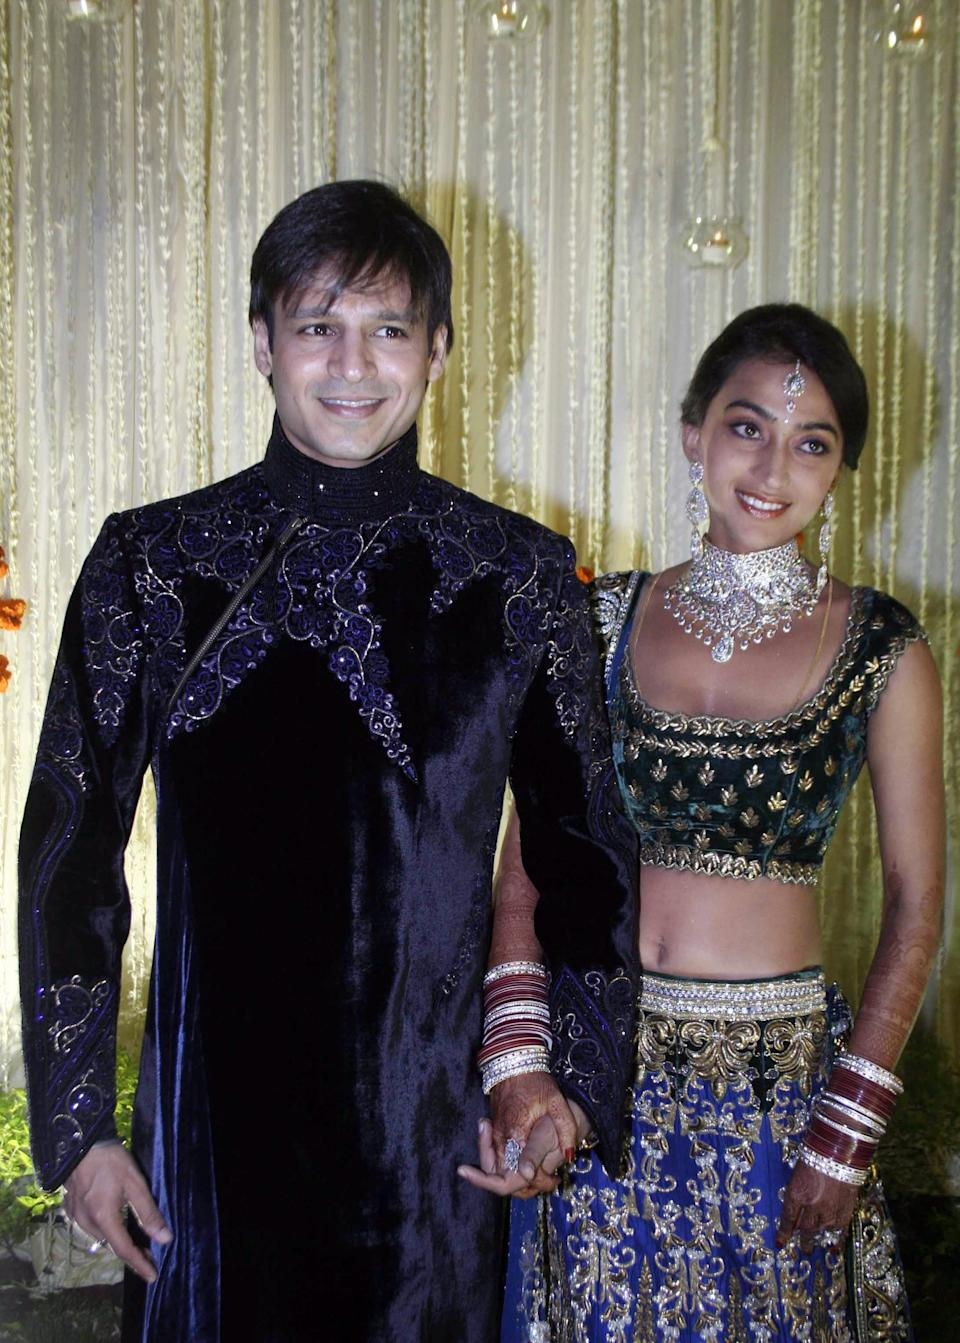 Indian Bollywood actor Vivek Oberoi (L) recently married Priyanka Alva (R) pose at a reception party late night October 31, 2010 in Mumbai. AFP PHOTO/STR (Photo credit should read STRDEL/AFP via Getty Images)